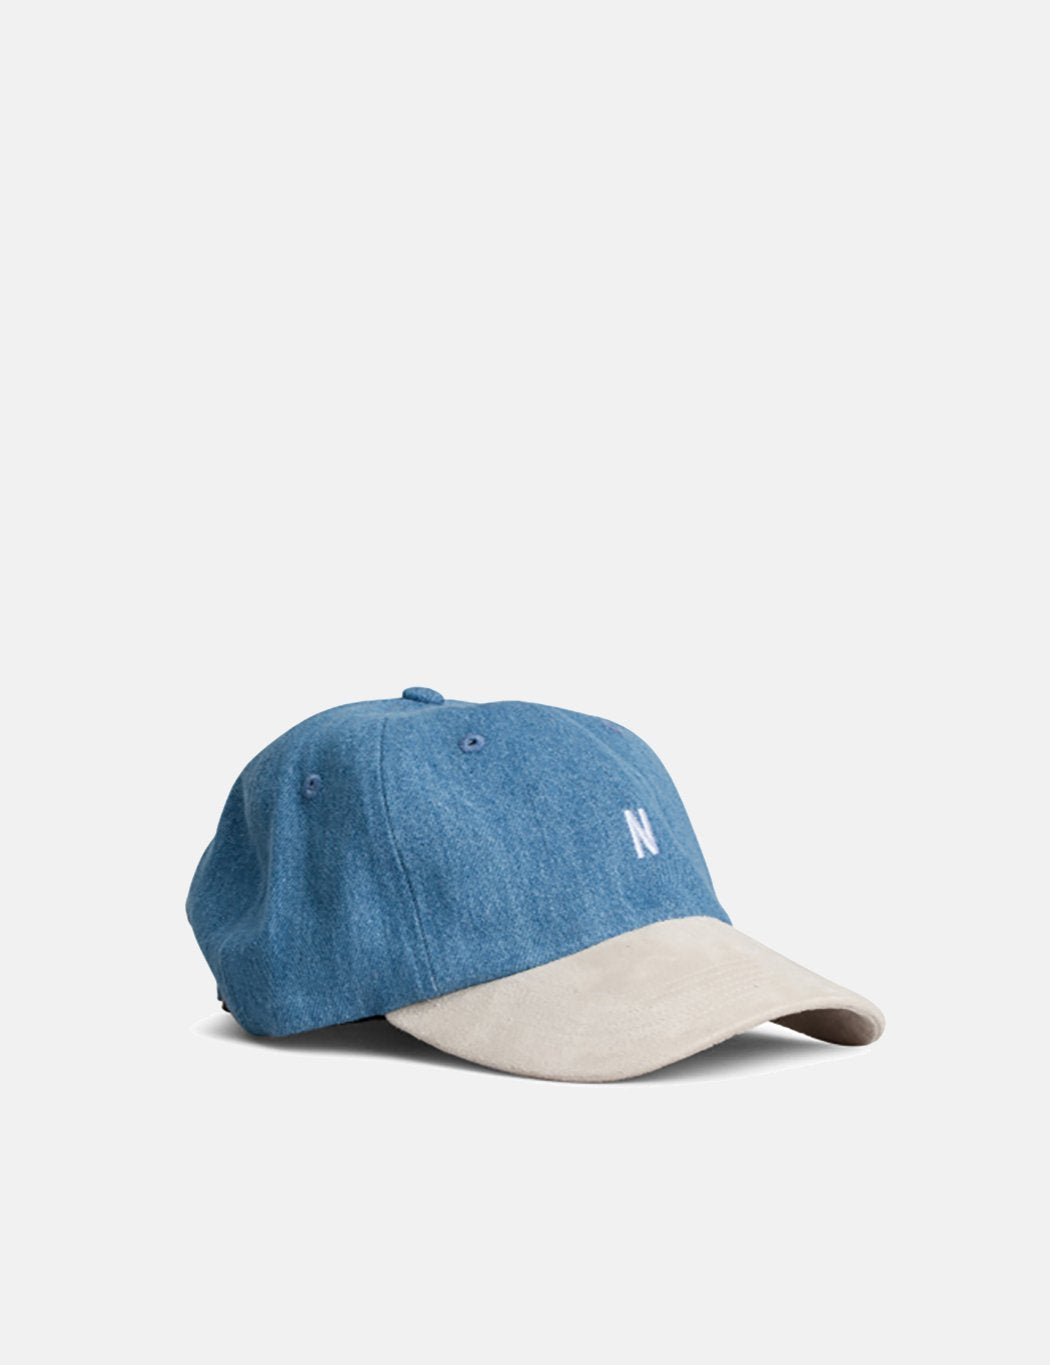 Norse Projects Denim Sports Cap - Sunwashed Blue